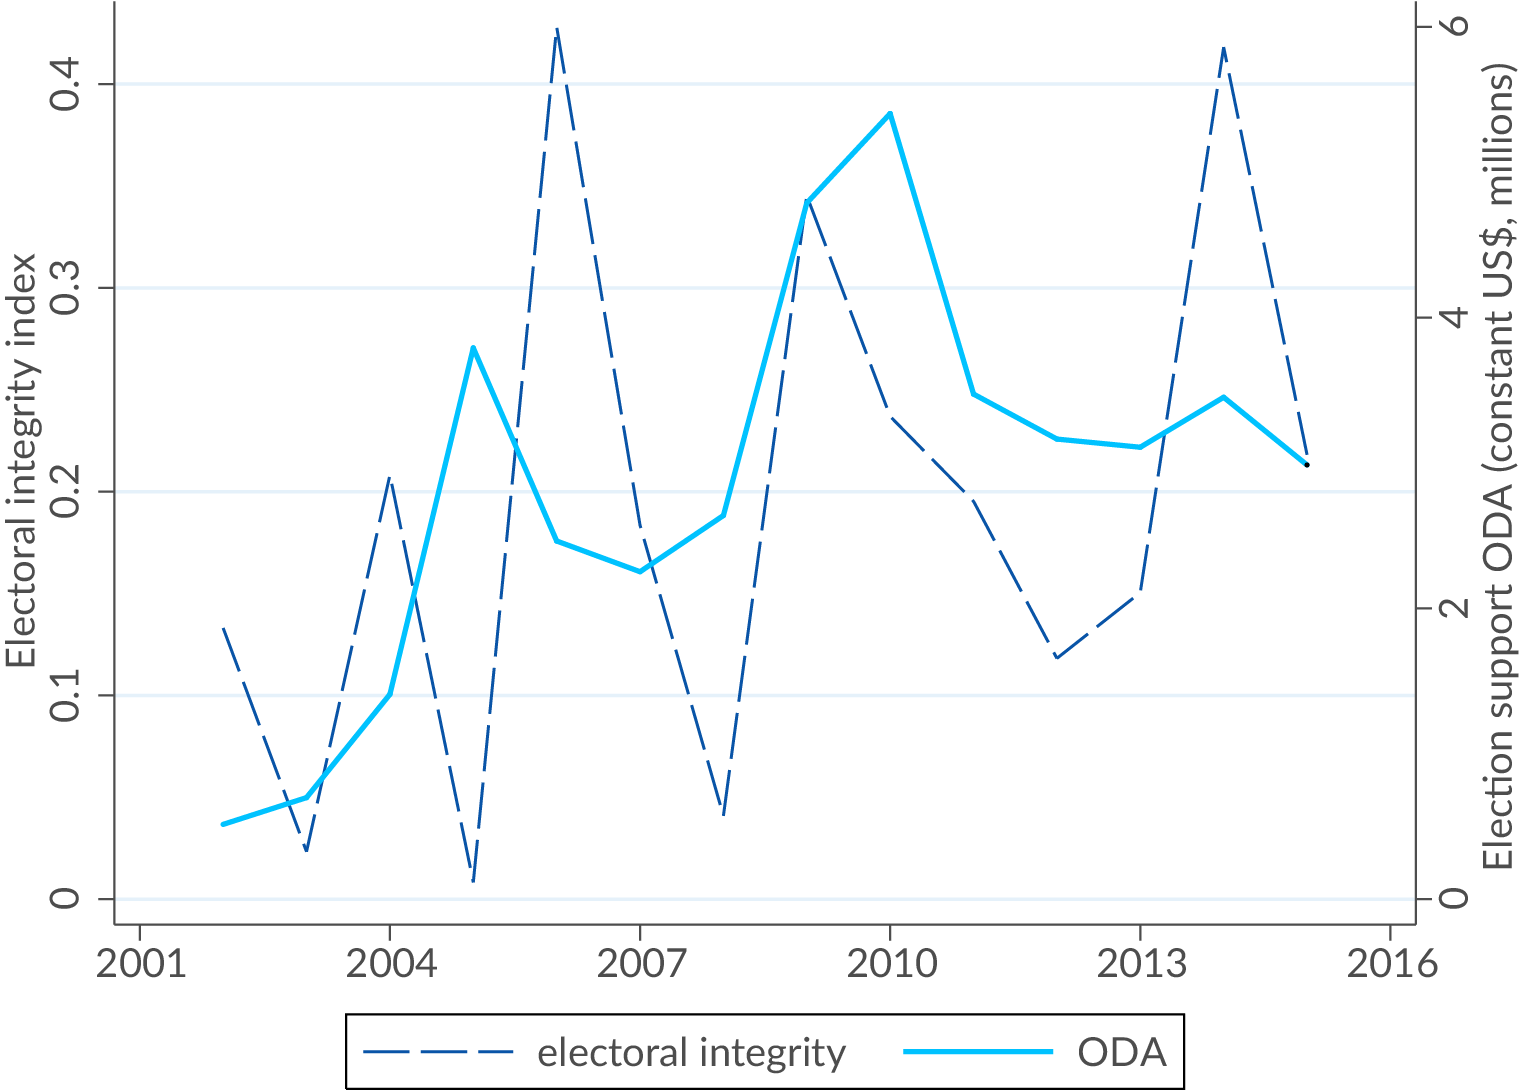 Cash Pool Oecd Promoting Electoral Integrity Through Aid Analysis And Advice For